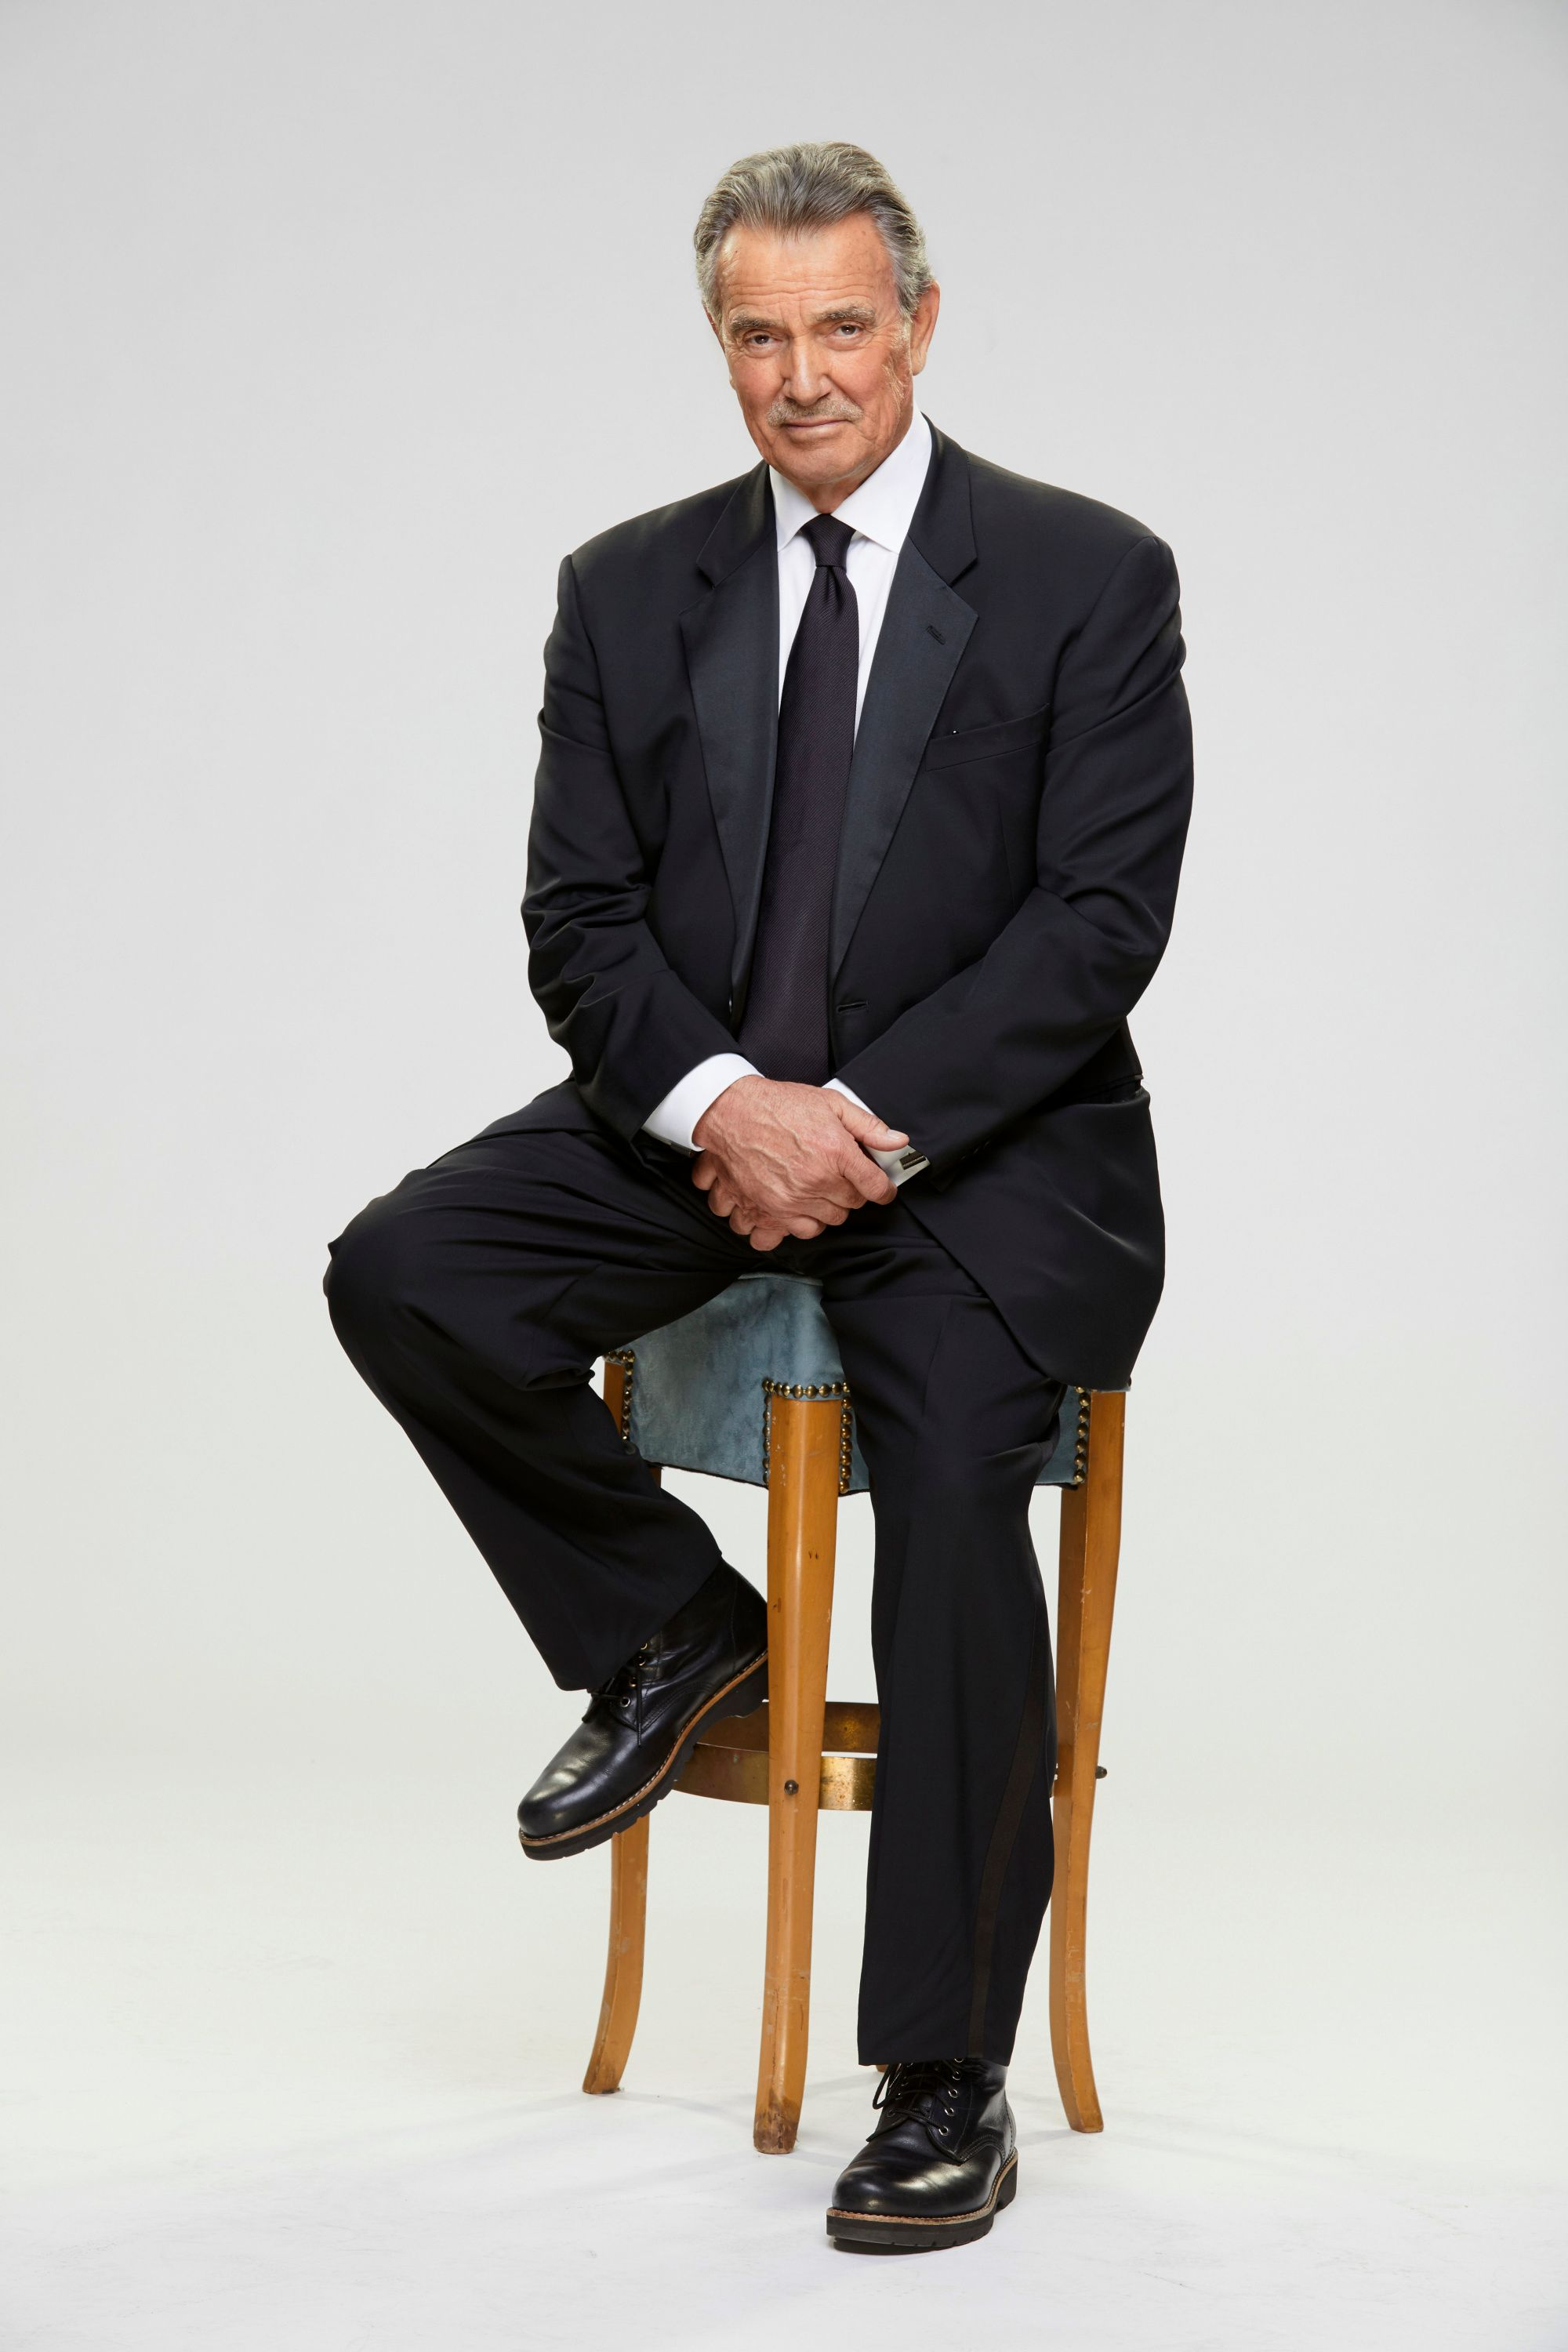 Eric Braeden as Victor Newman sitting on a stool